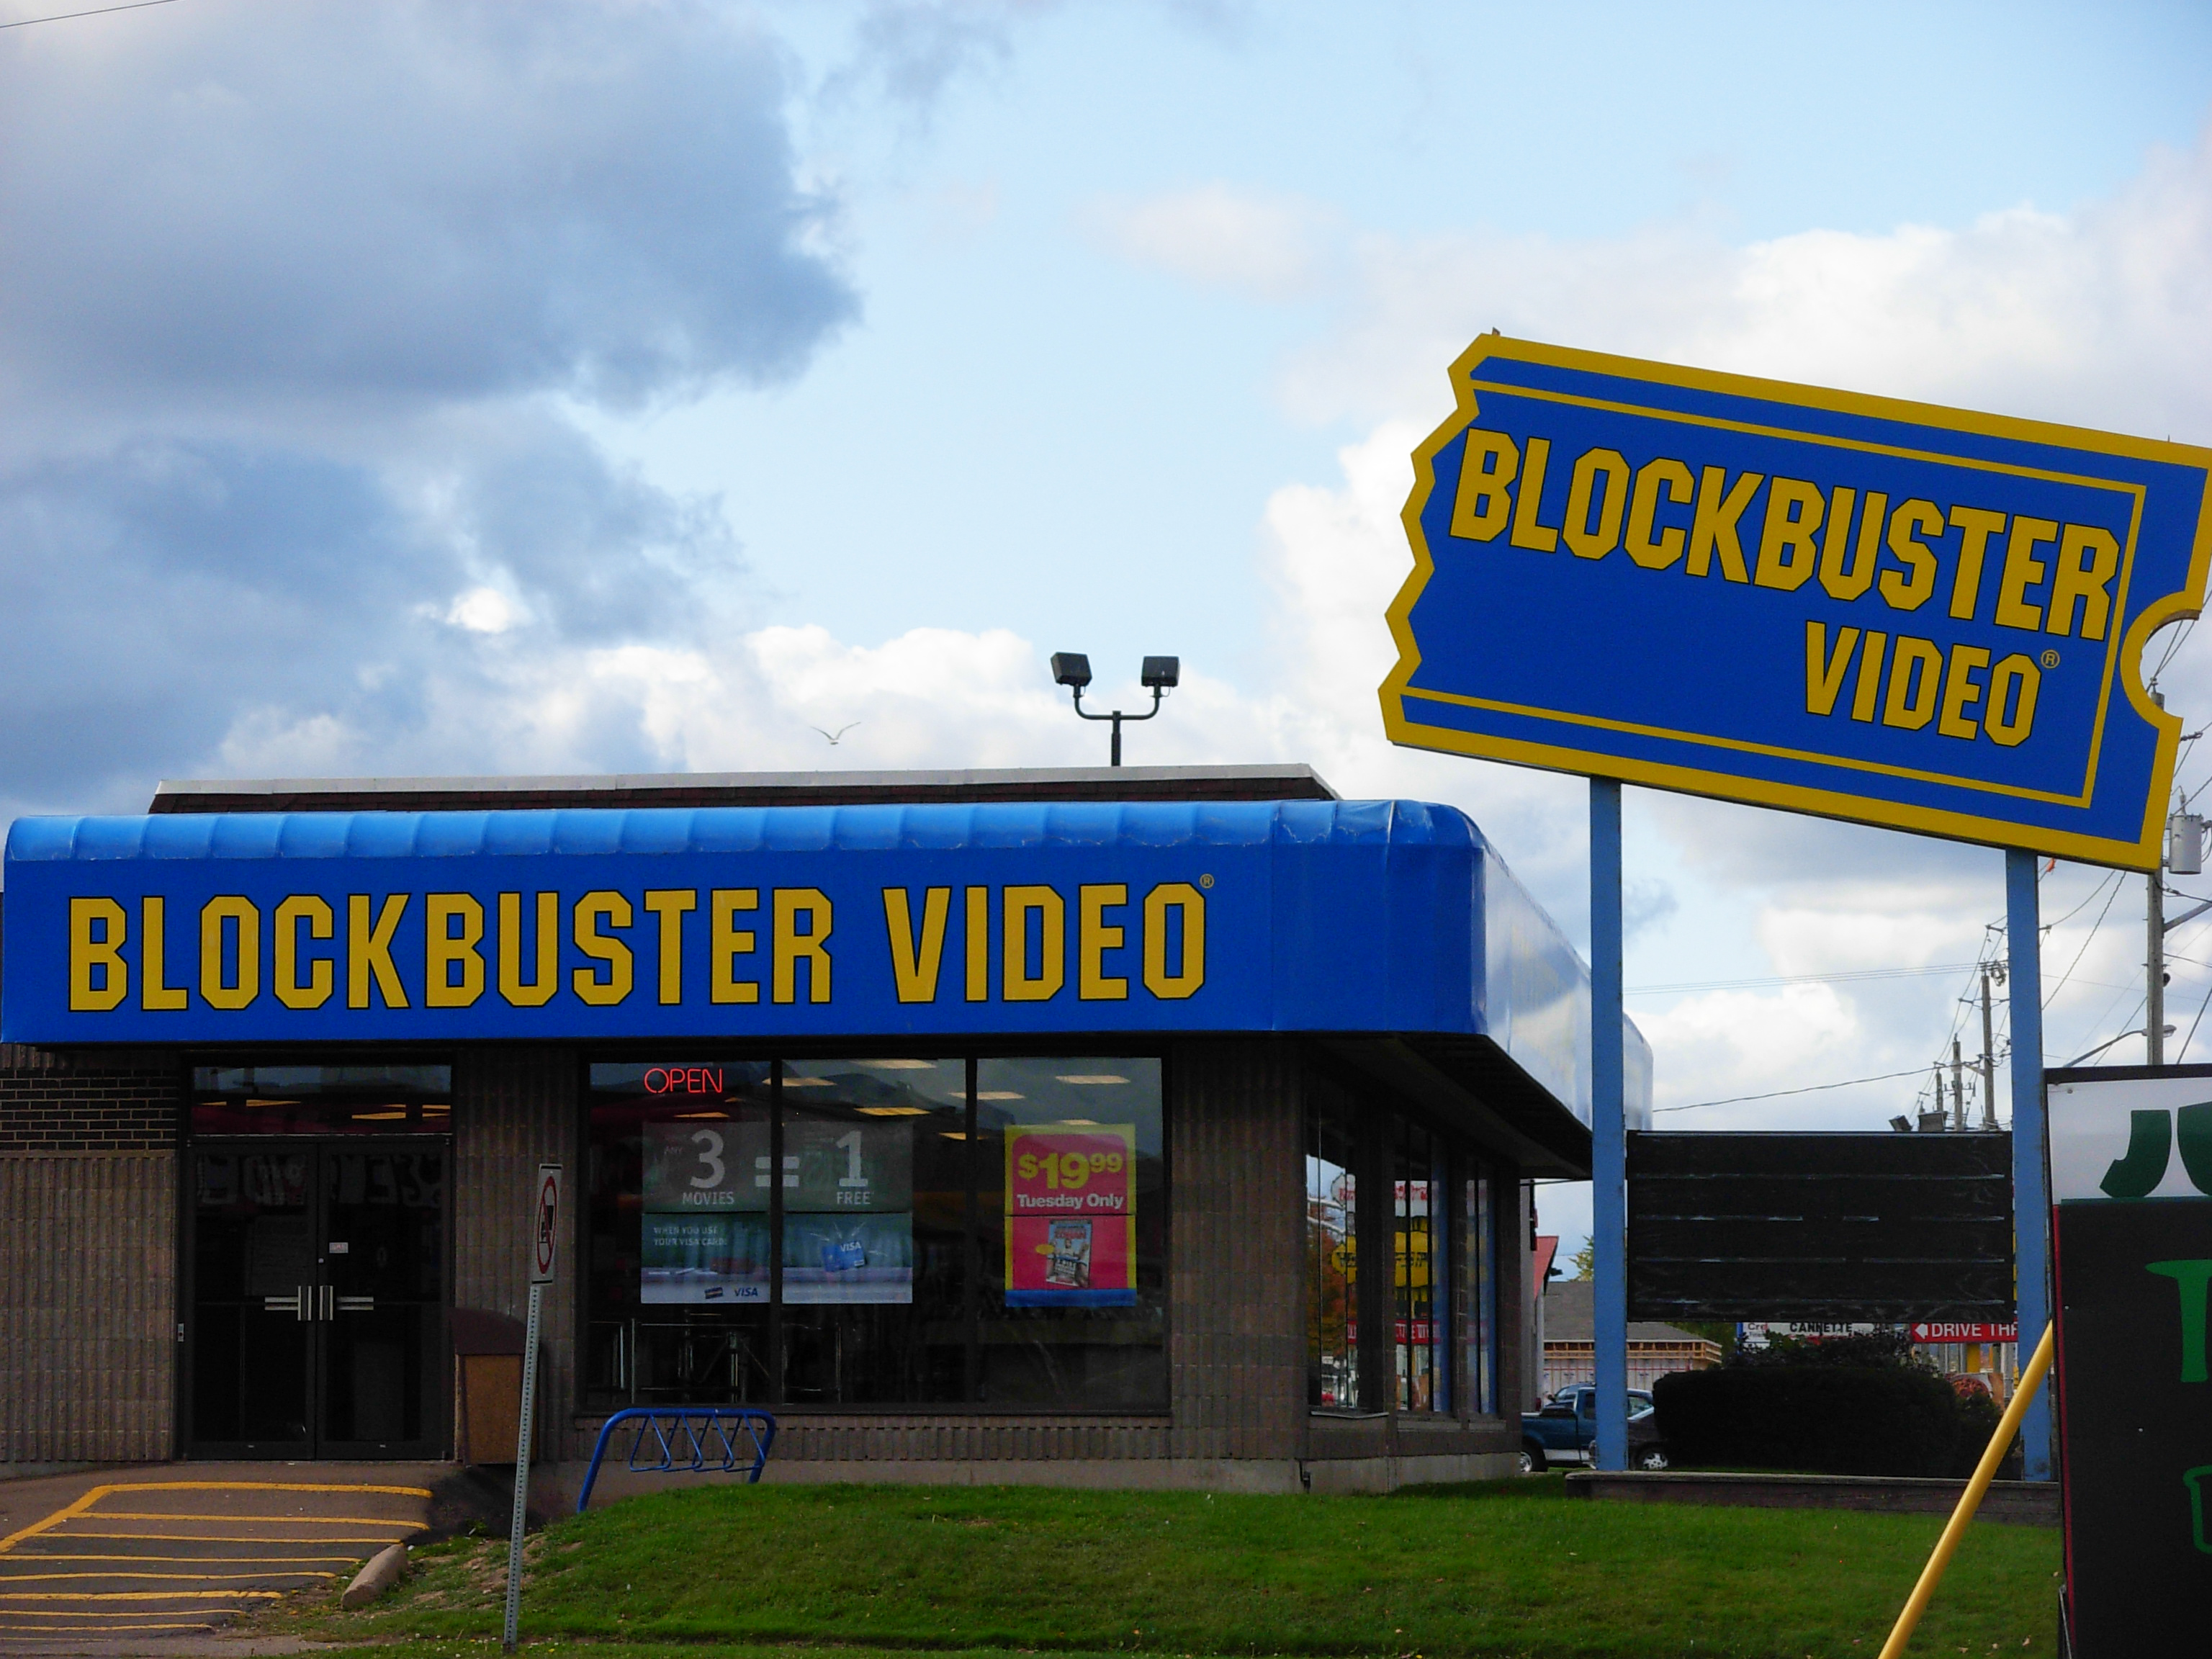 Poor Movie Rental Selection Since the Demise of Blockbuster